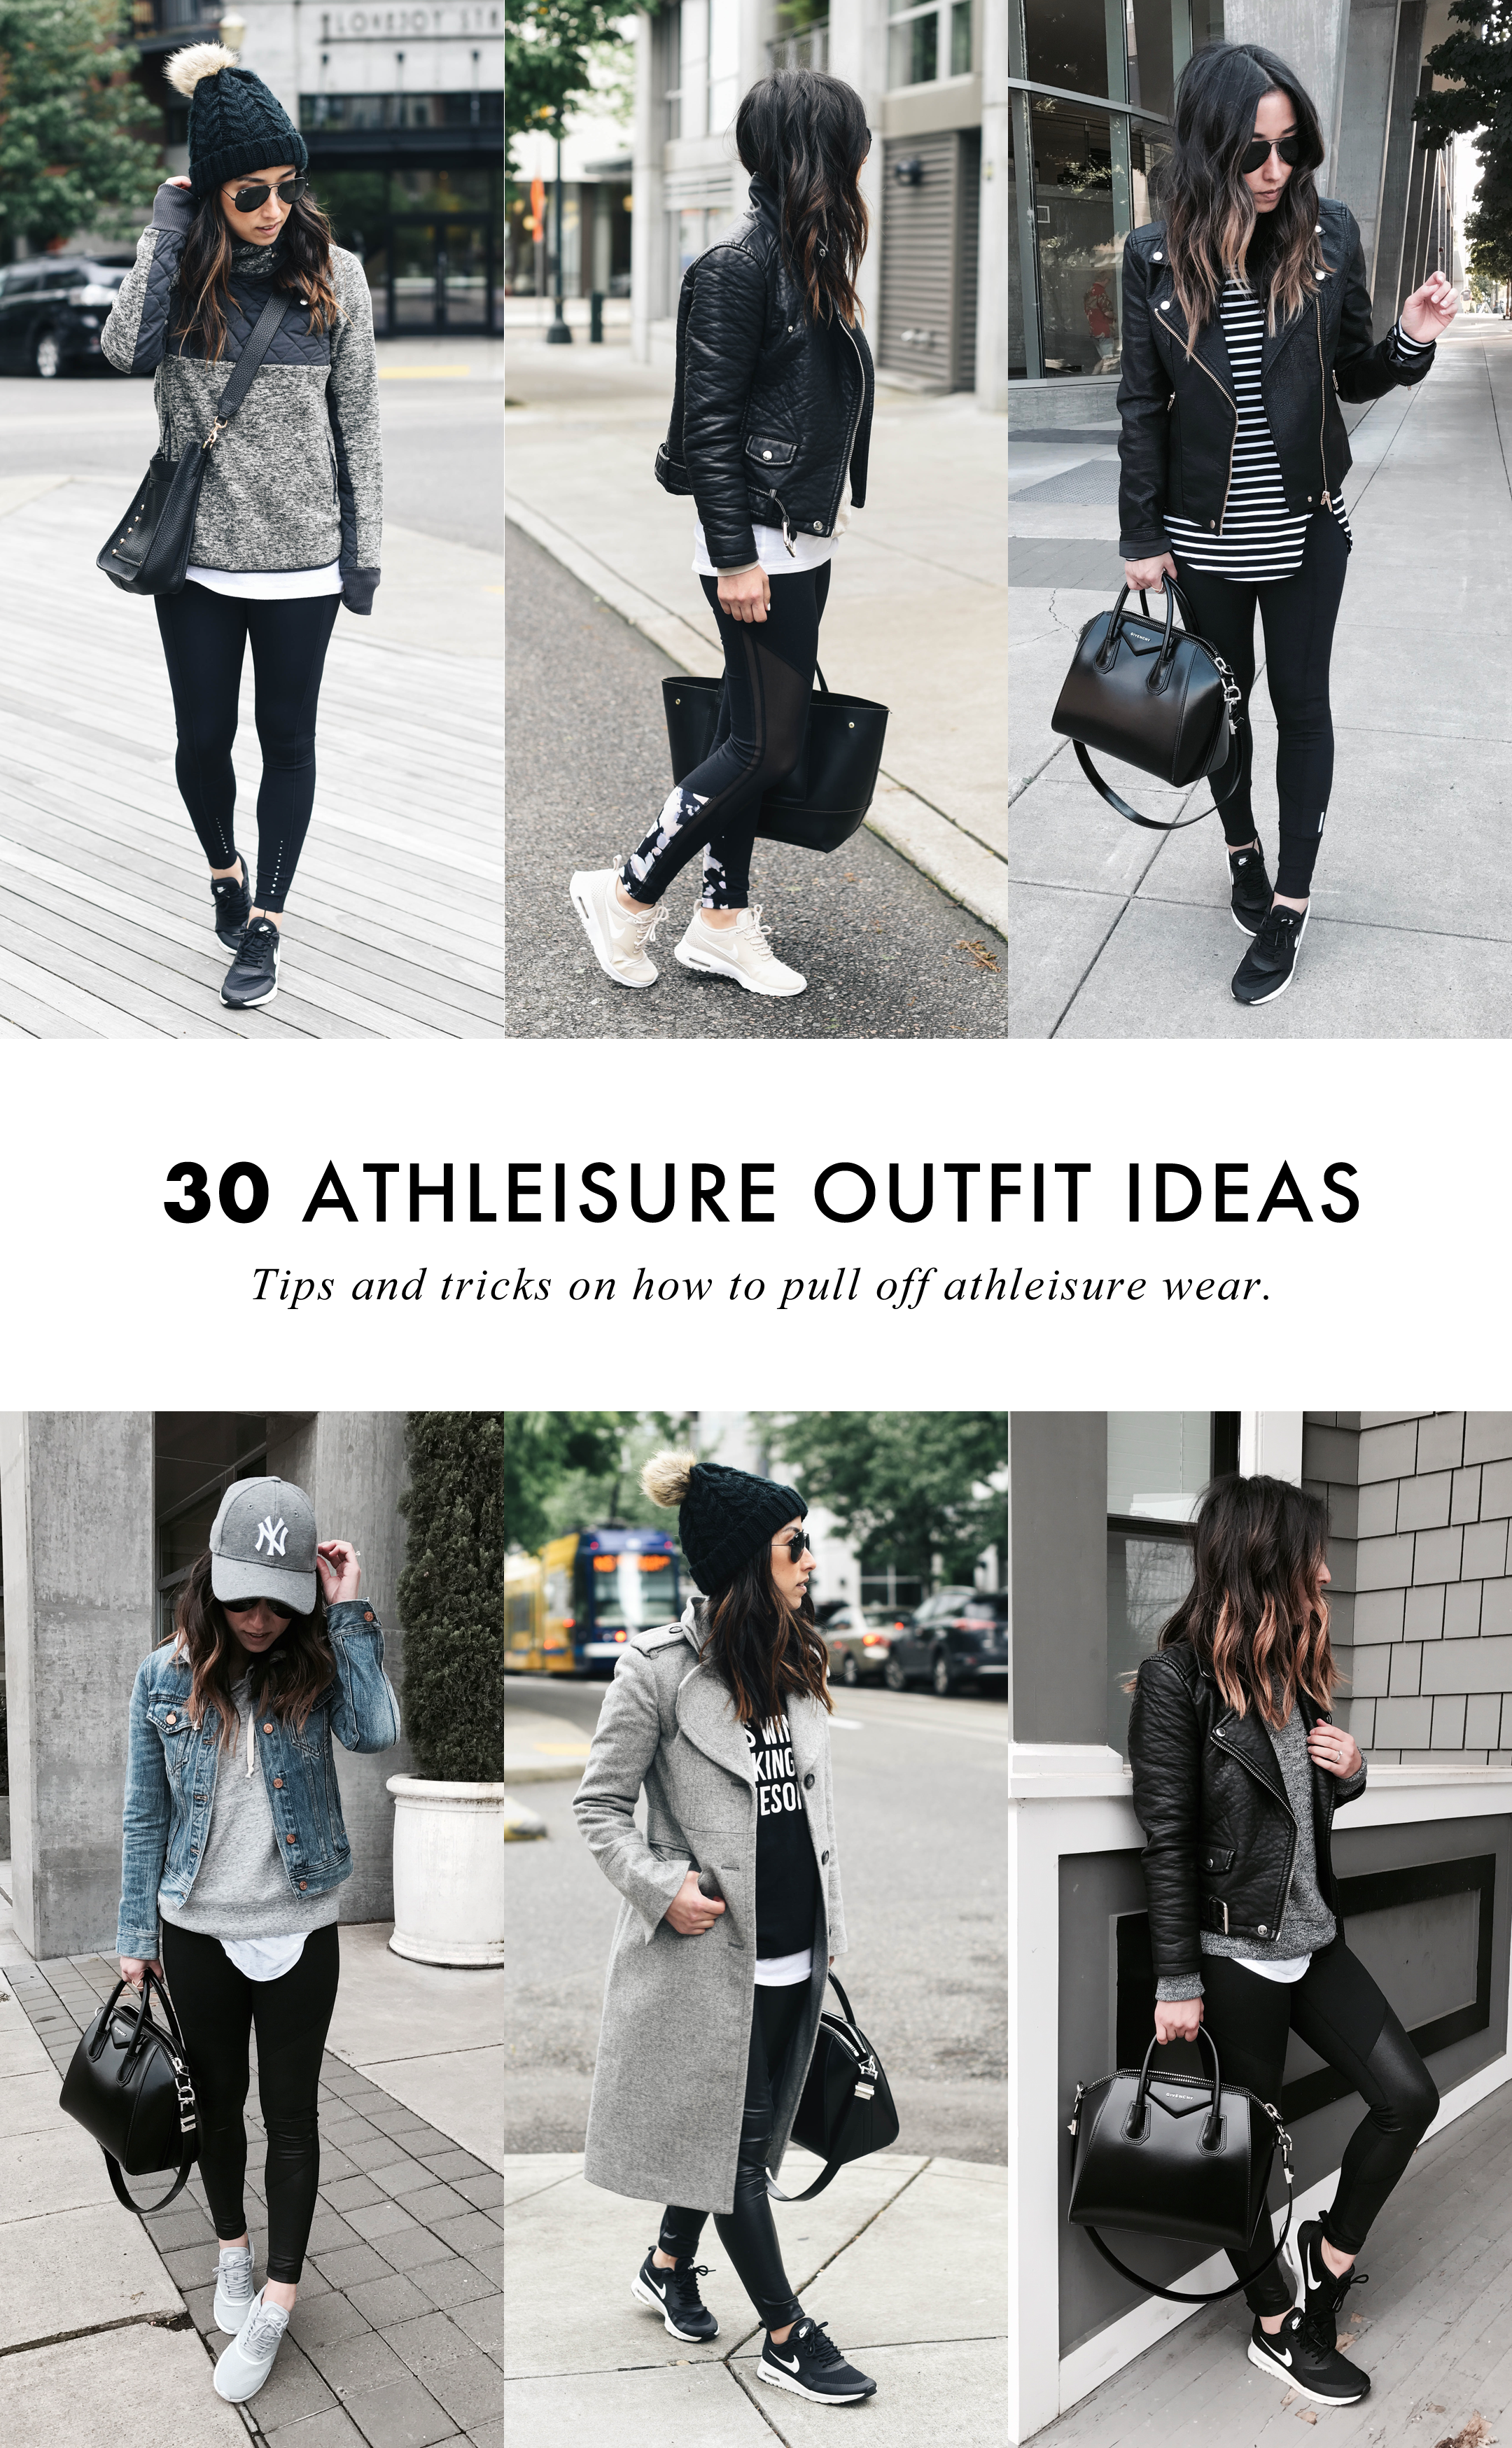 faa7ba832b2 How To Pull Off Athleisure Wear + 30 Outfit Ideas - Crystalin Marie